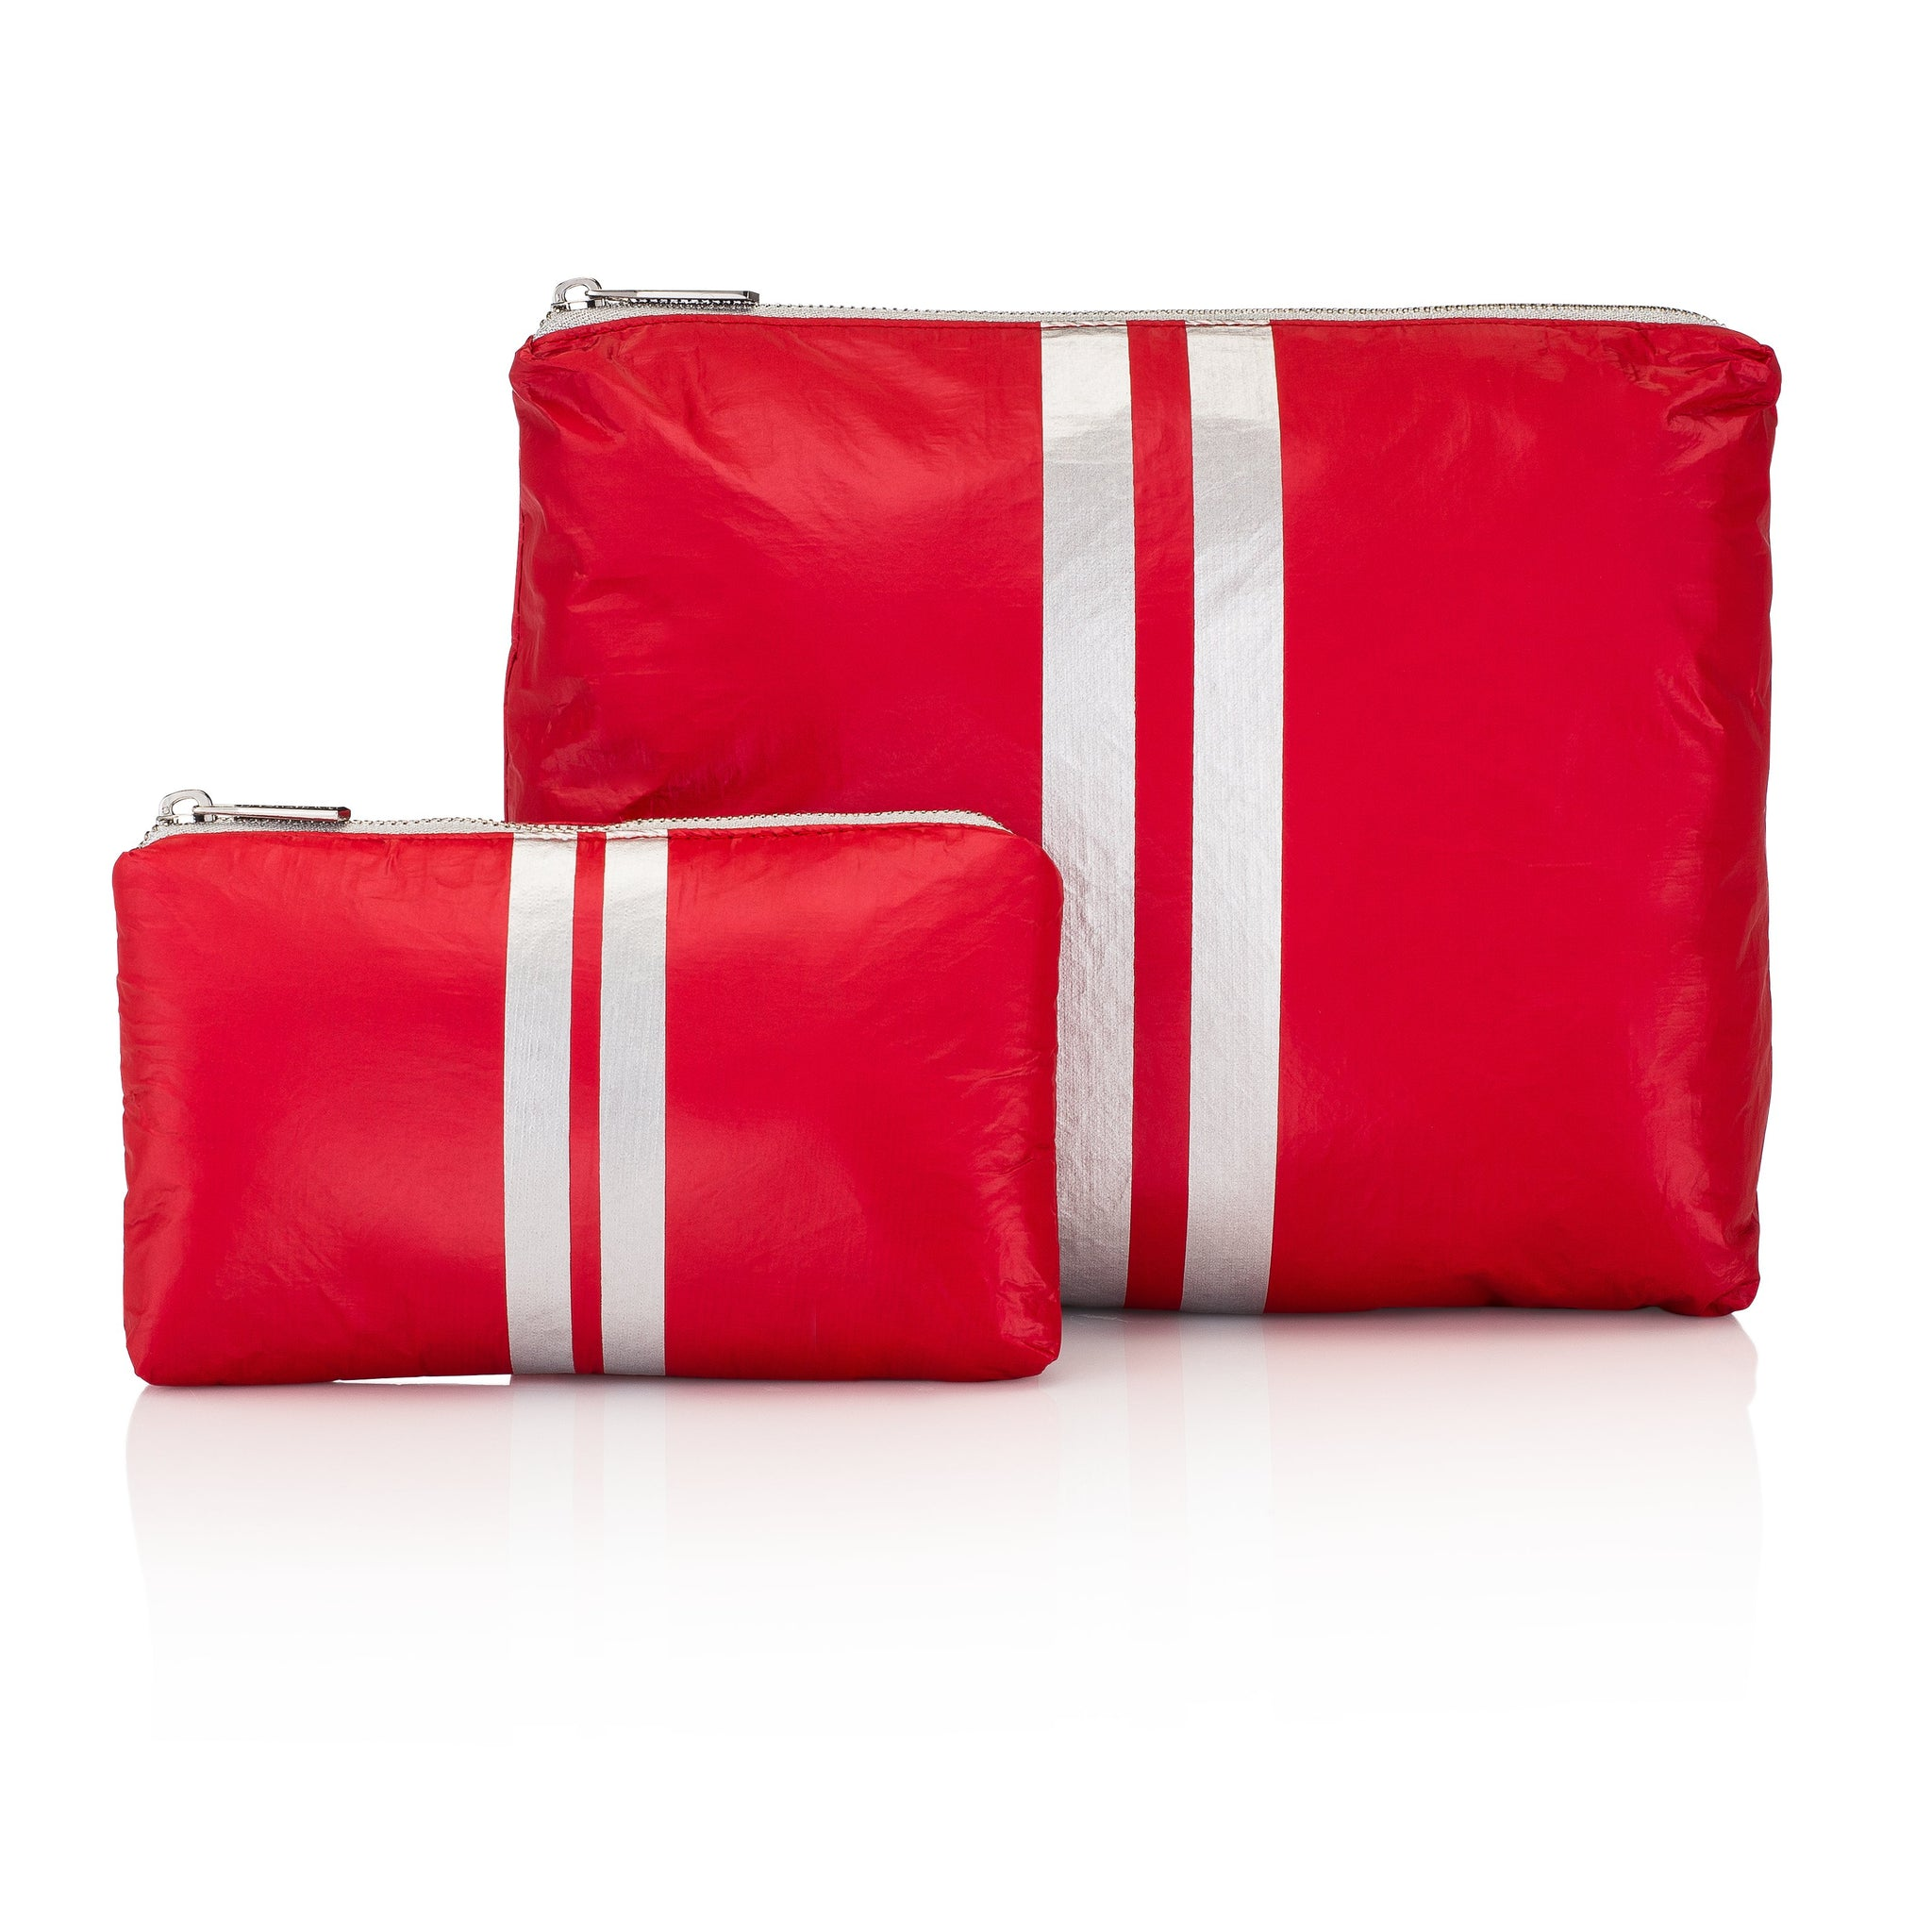 Hi Love Set of Two - Travel Pouch - Chili Pepper Red with Silver Metallic Lines - First Aid Kit